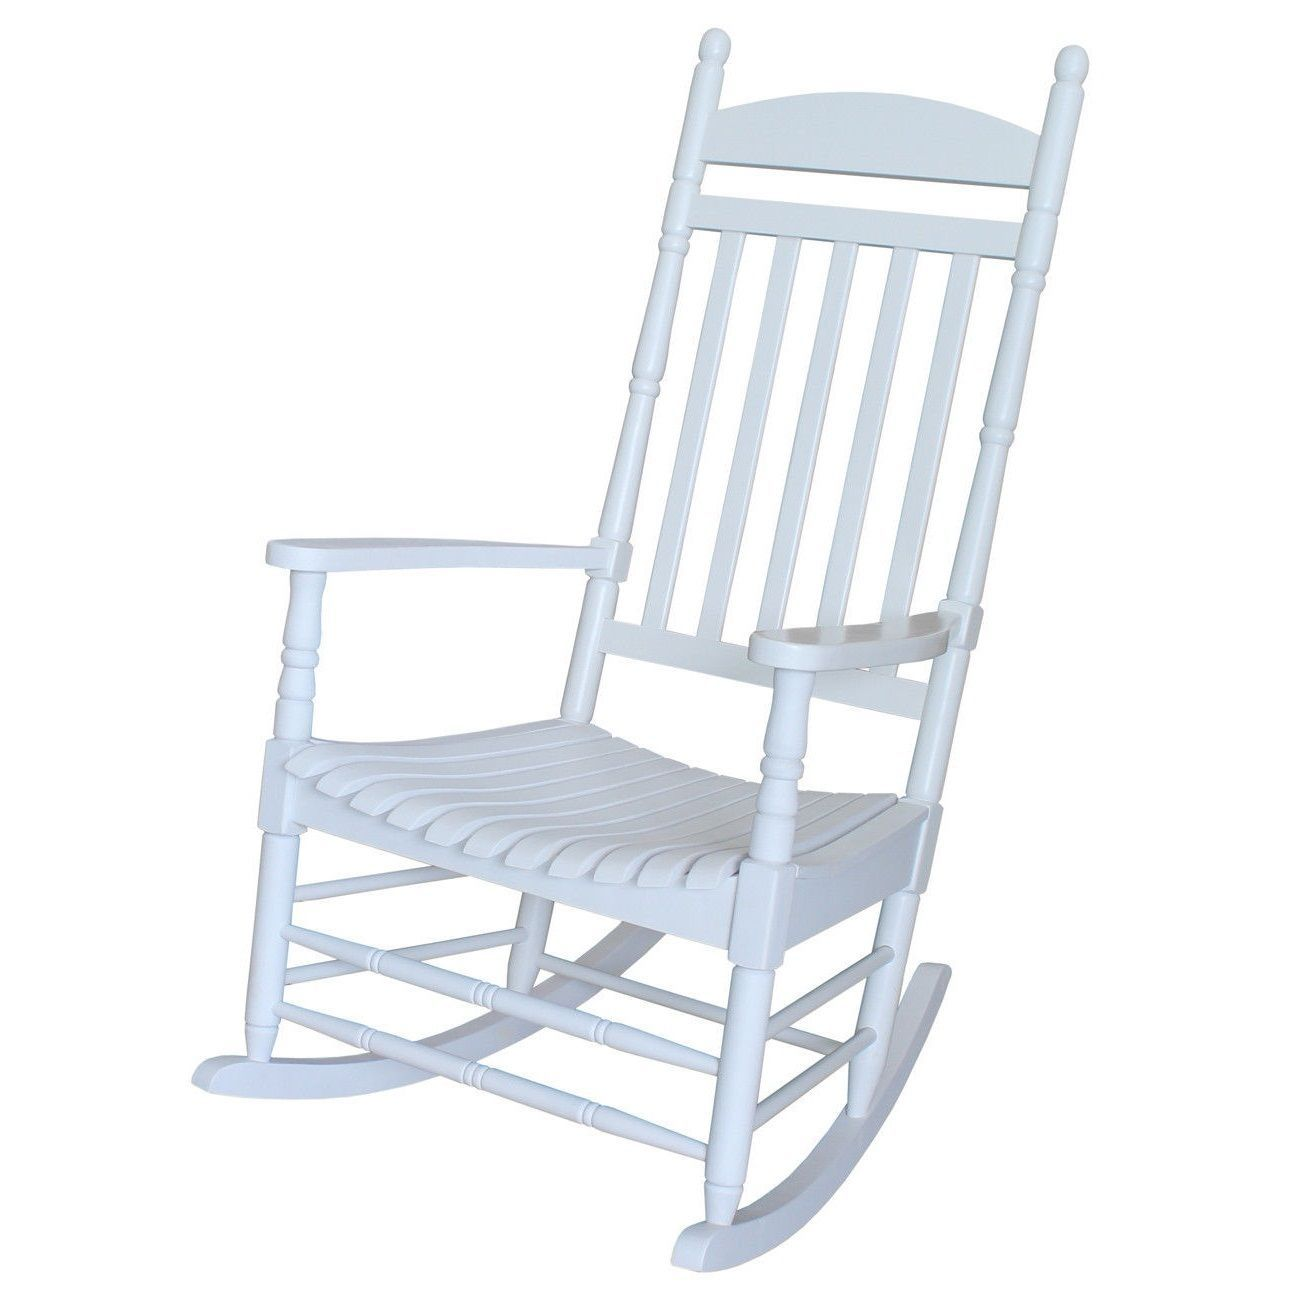 Classic White Wood Front Porch Rocking Chair - Chairs